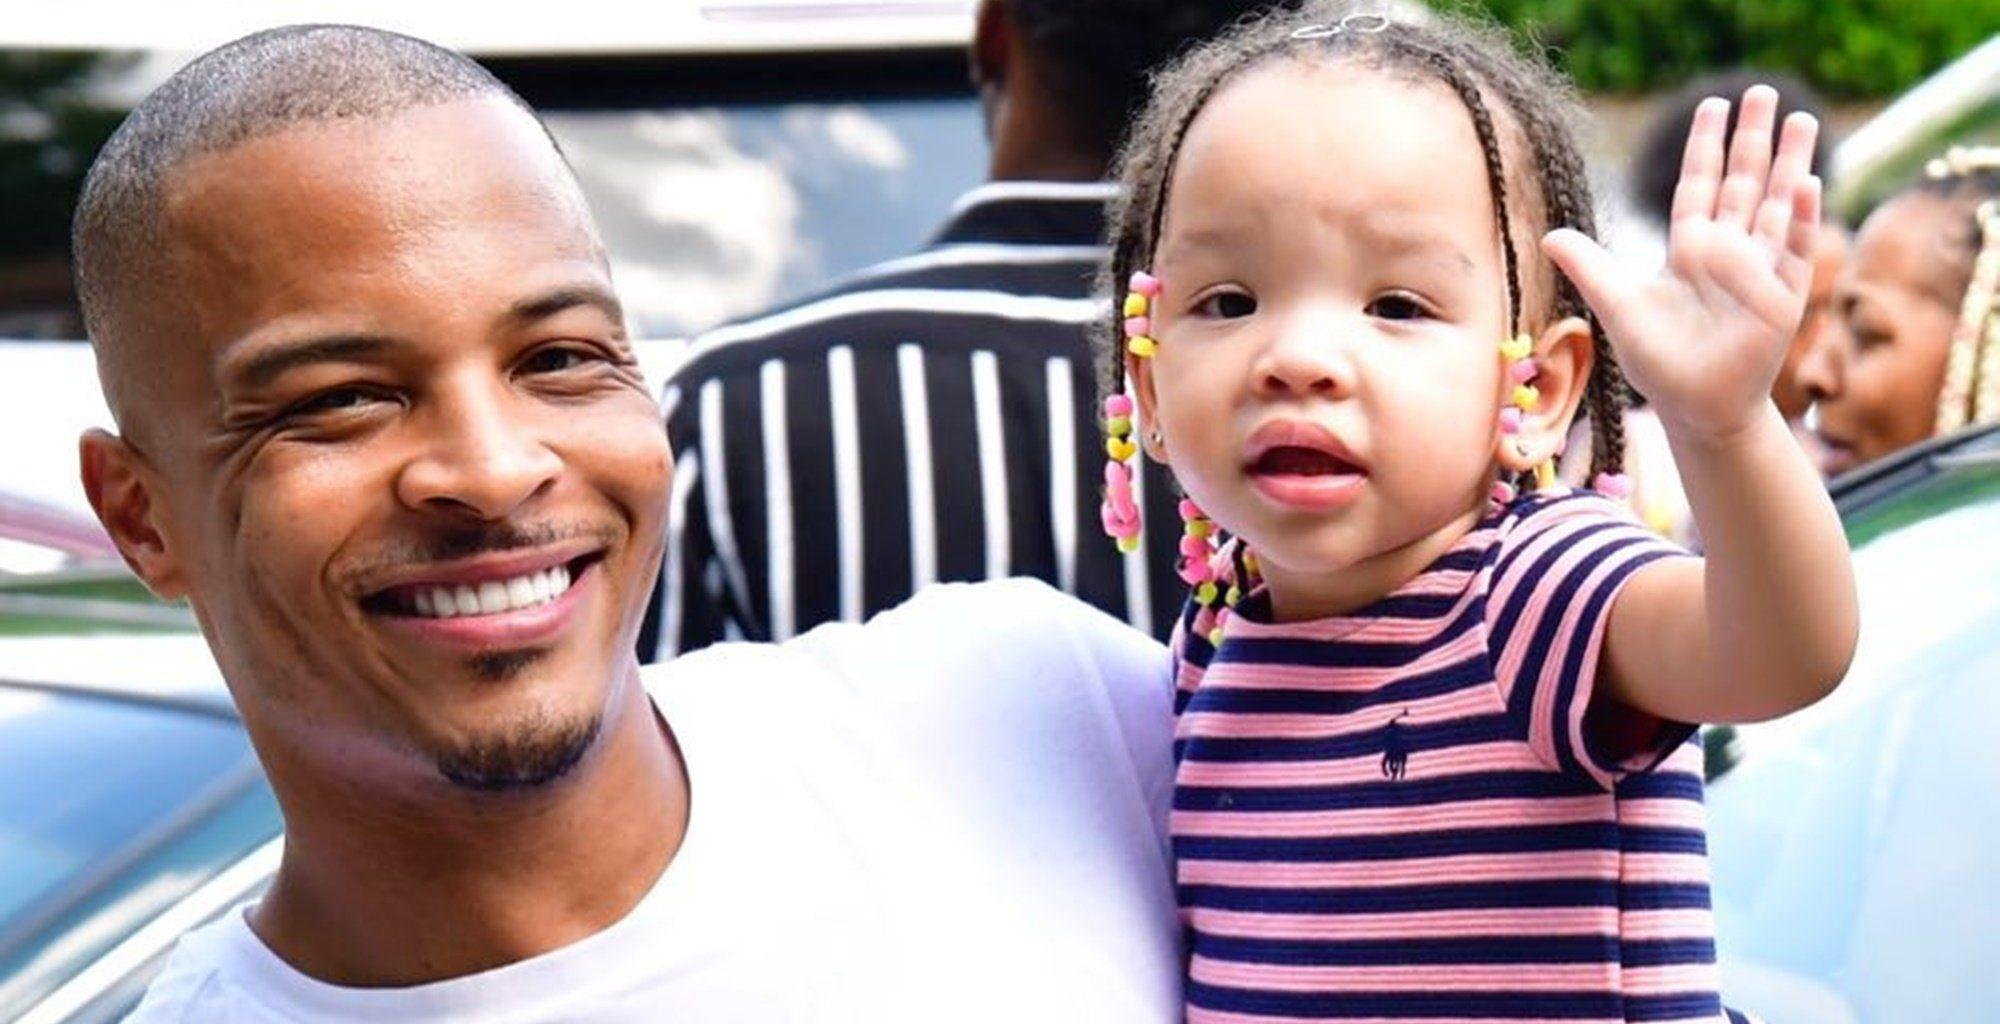 T.I. Shares The Sweetest Photo Of His Baby Girl, Heiress Harris And Has Fans In Awe